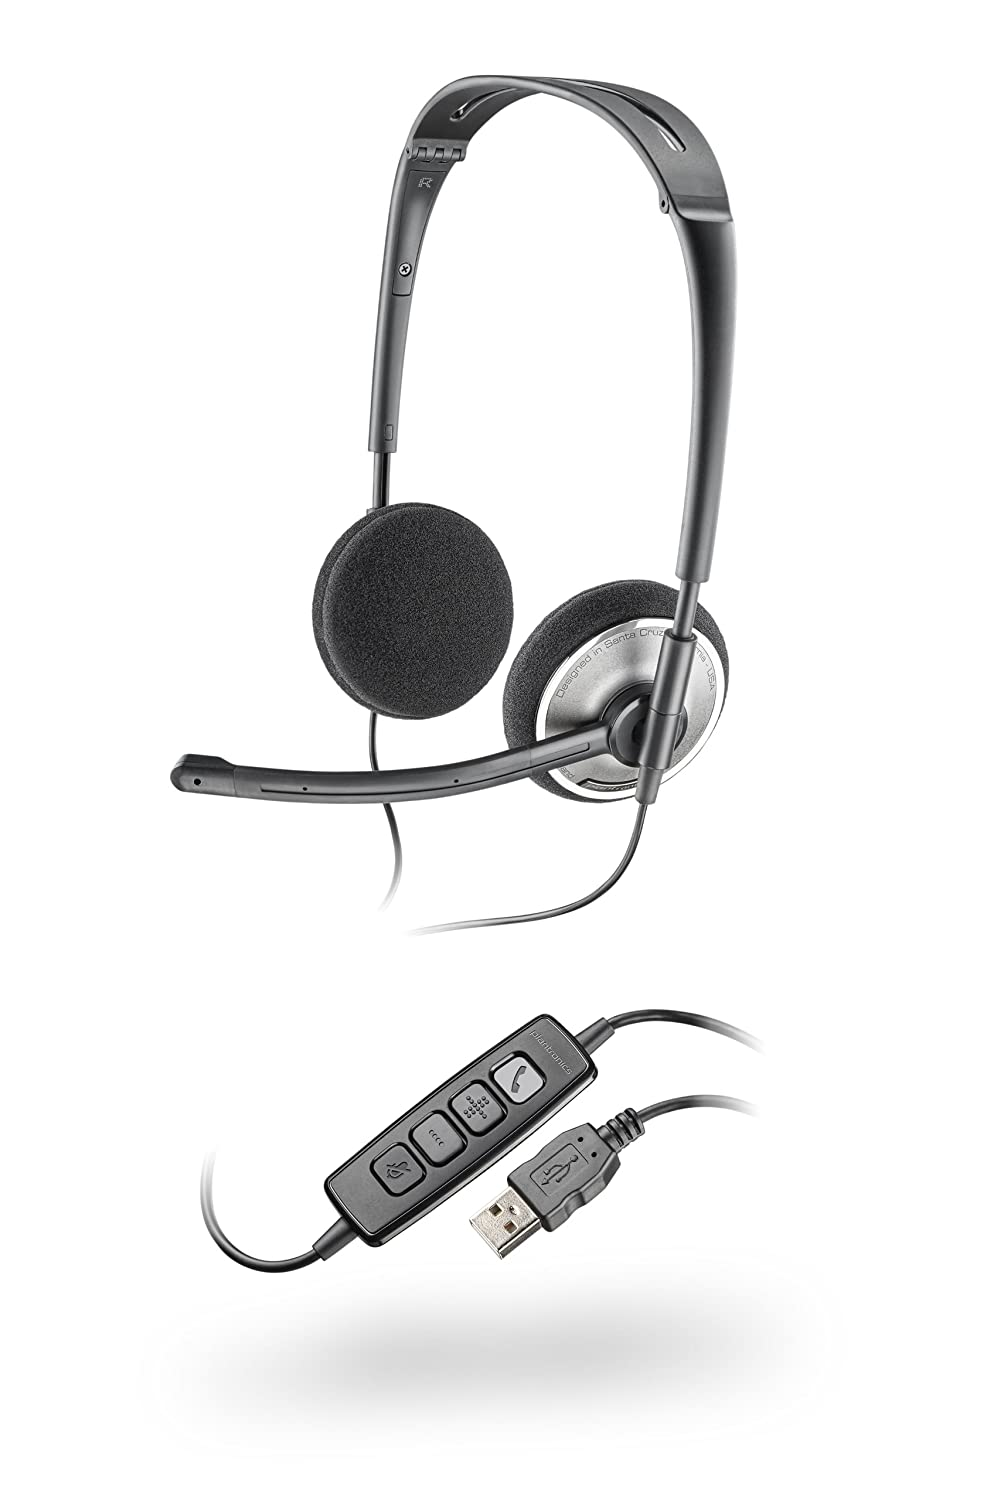 Plantronics PLNAUDIO478 Stereo USB Headset fOR PC Audio 478